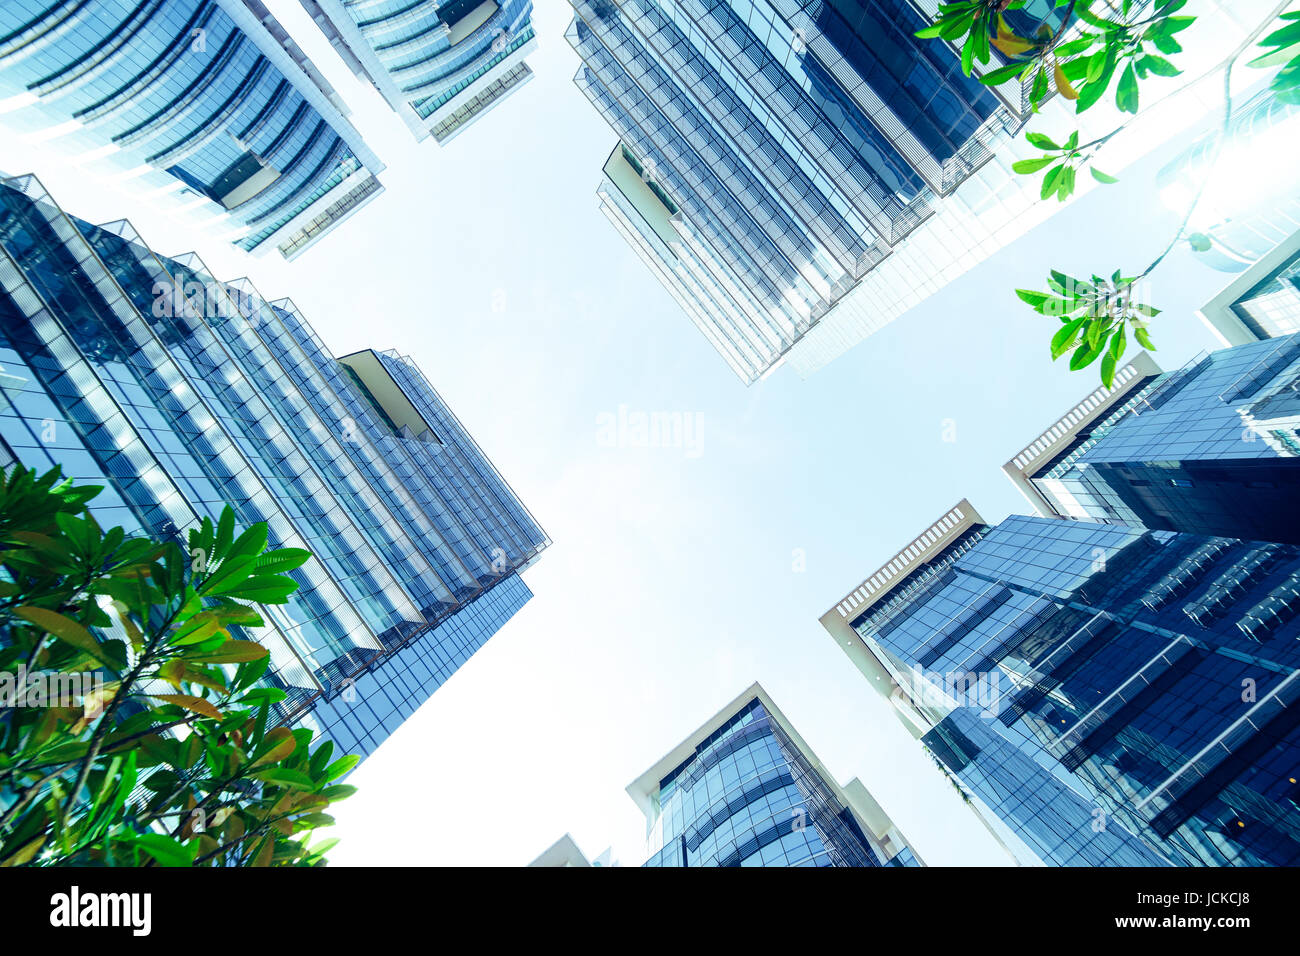 Common modern business skyscrapers, high-rise buildings, architecture raising to the sky, sun. Concepts of financial, - Stock Image